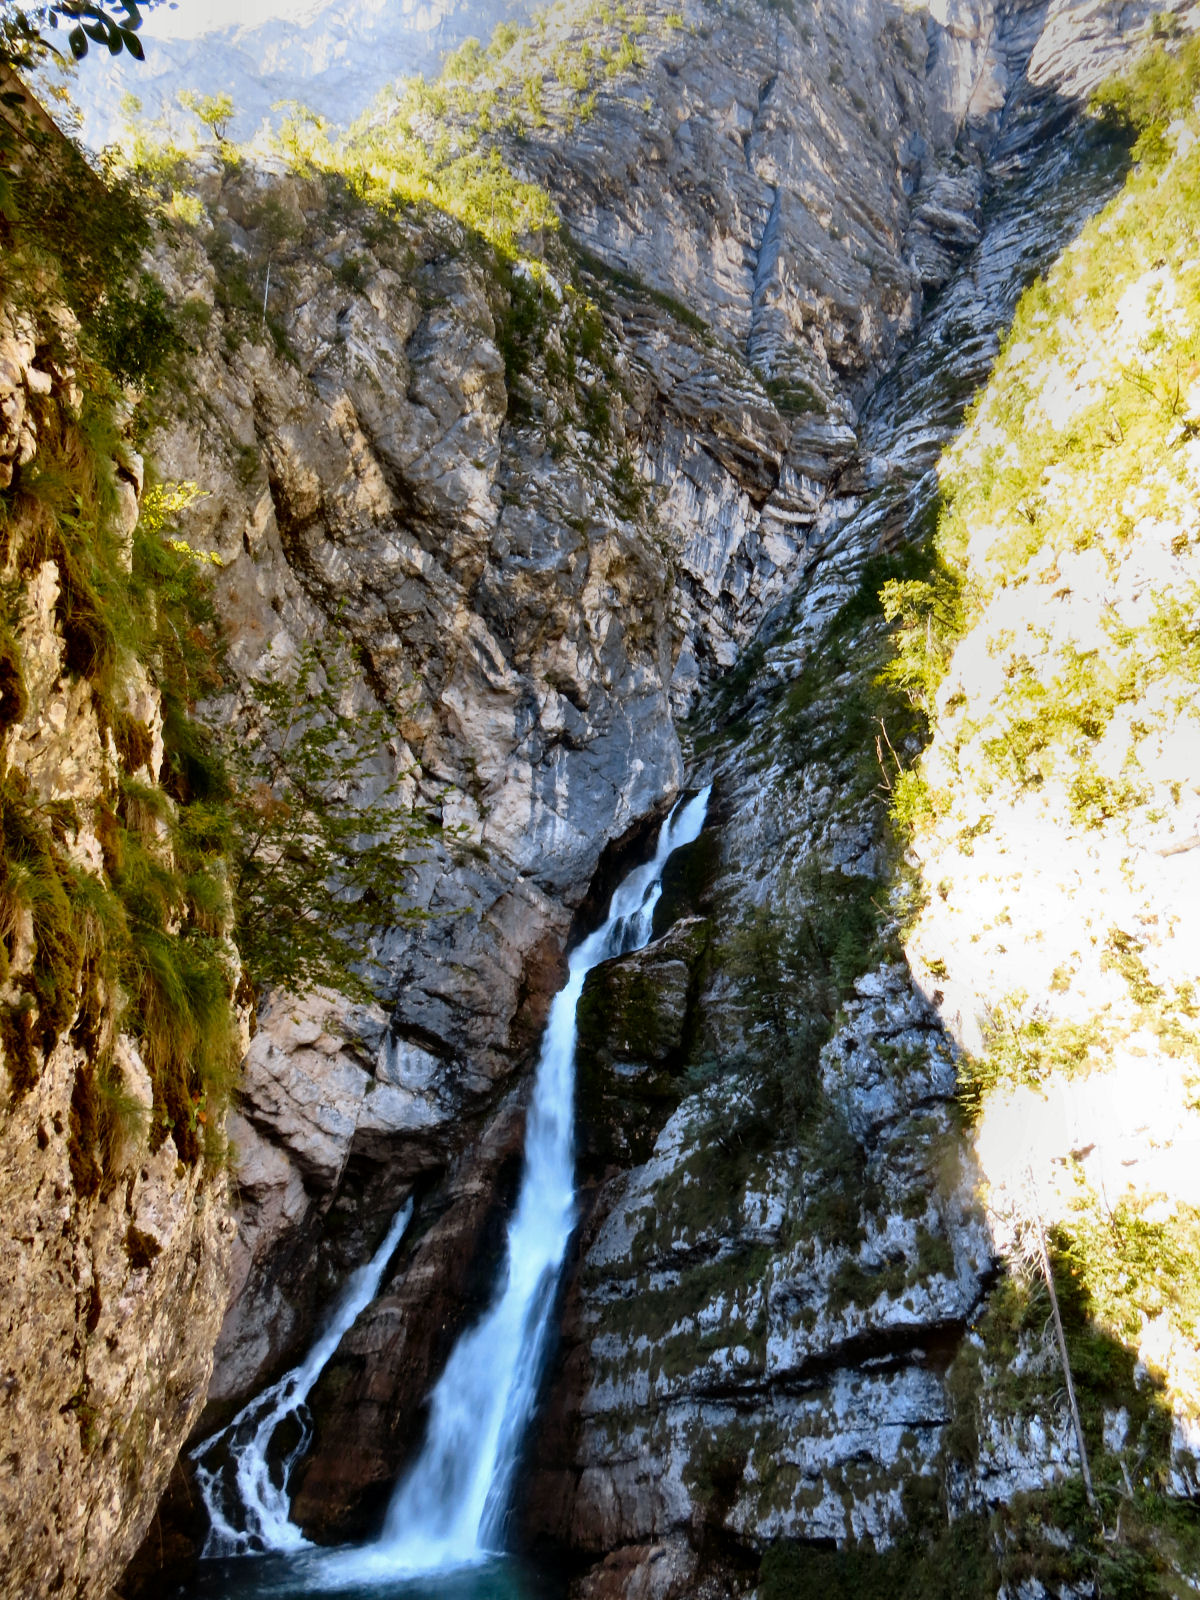 Waterfall Savica situated right under the majestic cliff of Komarca